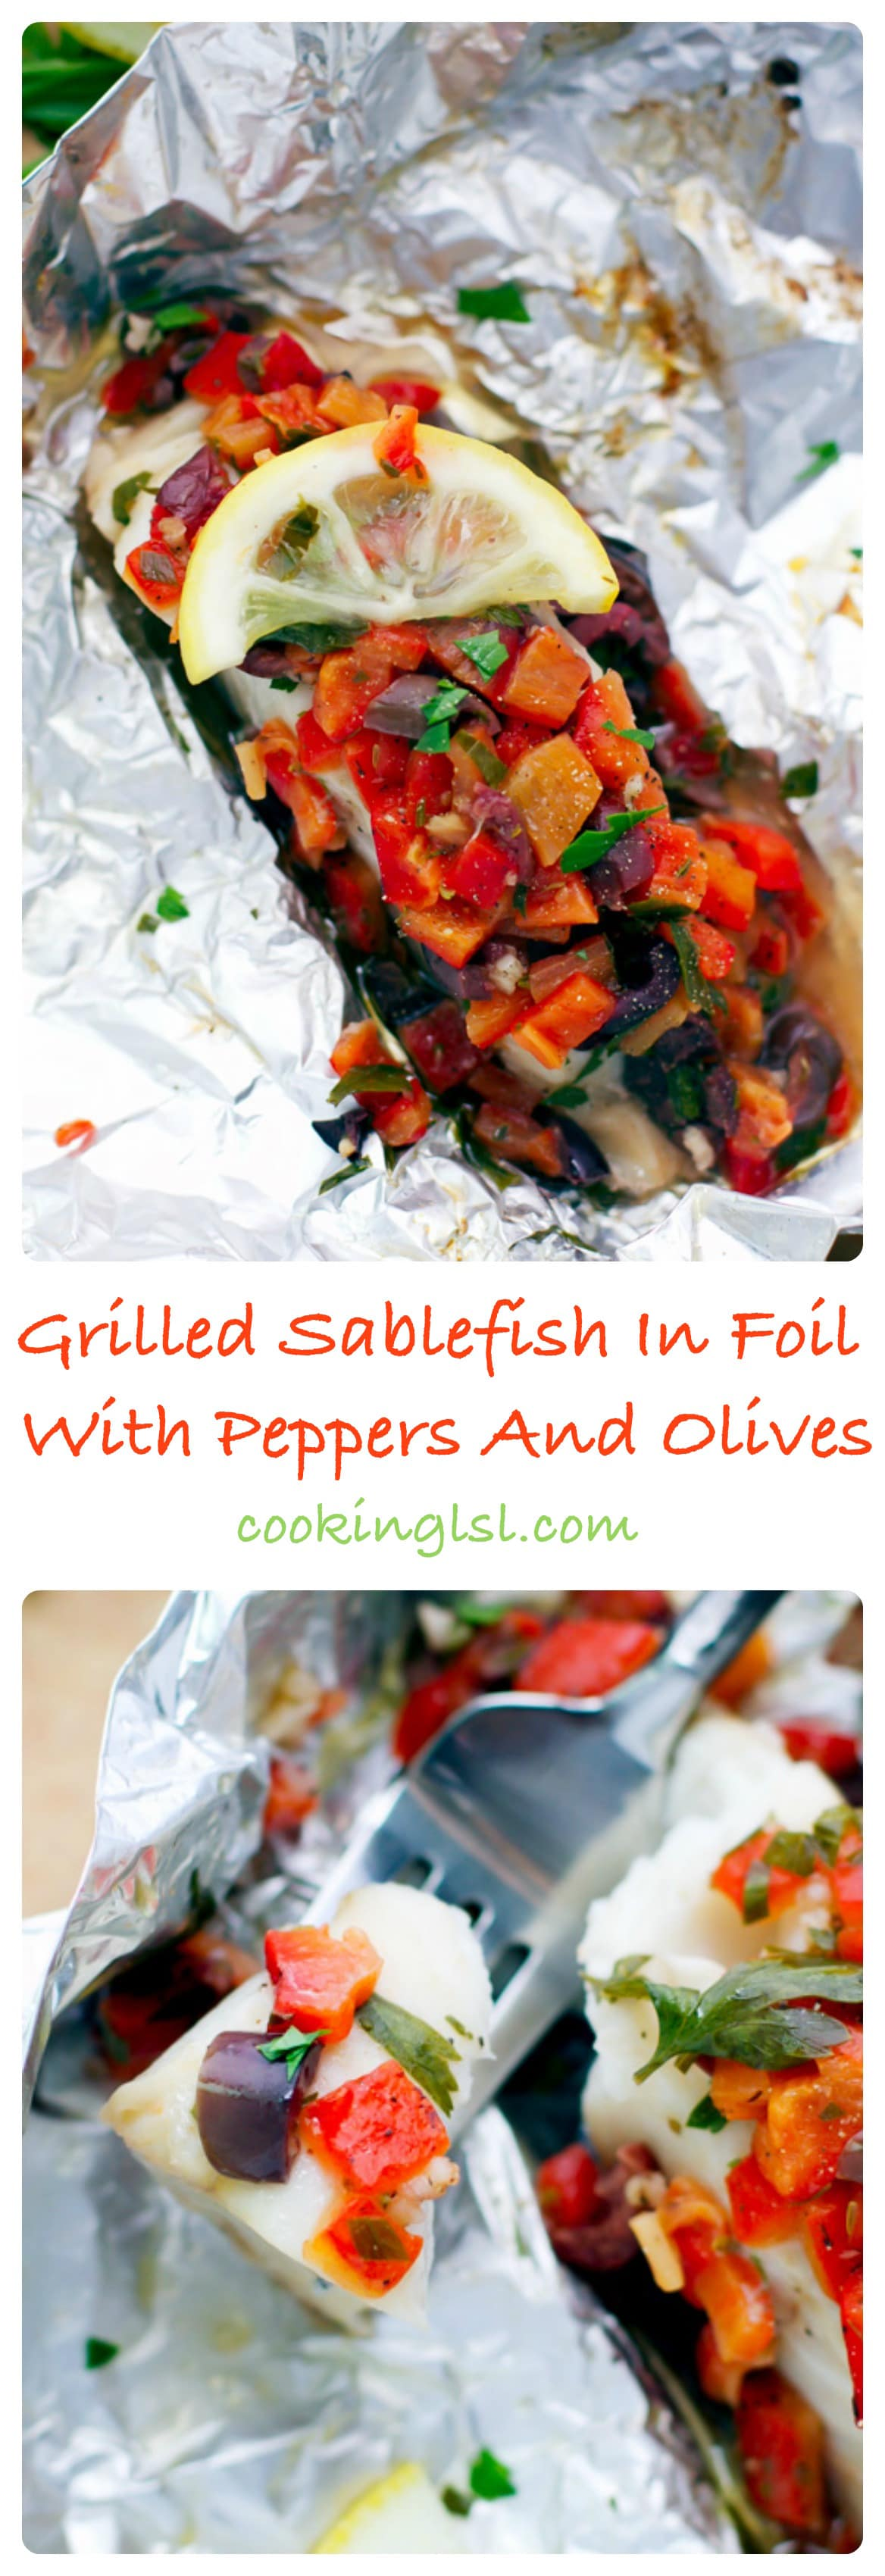 sablefish-foil-peppers-olives-15 minute